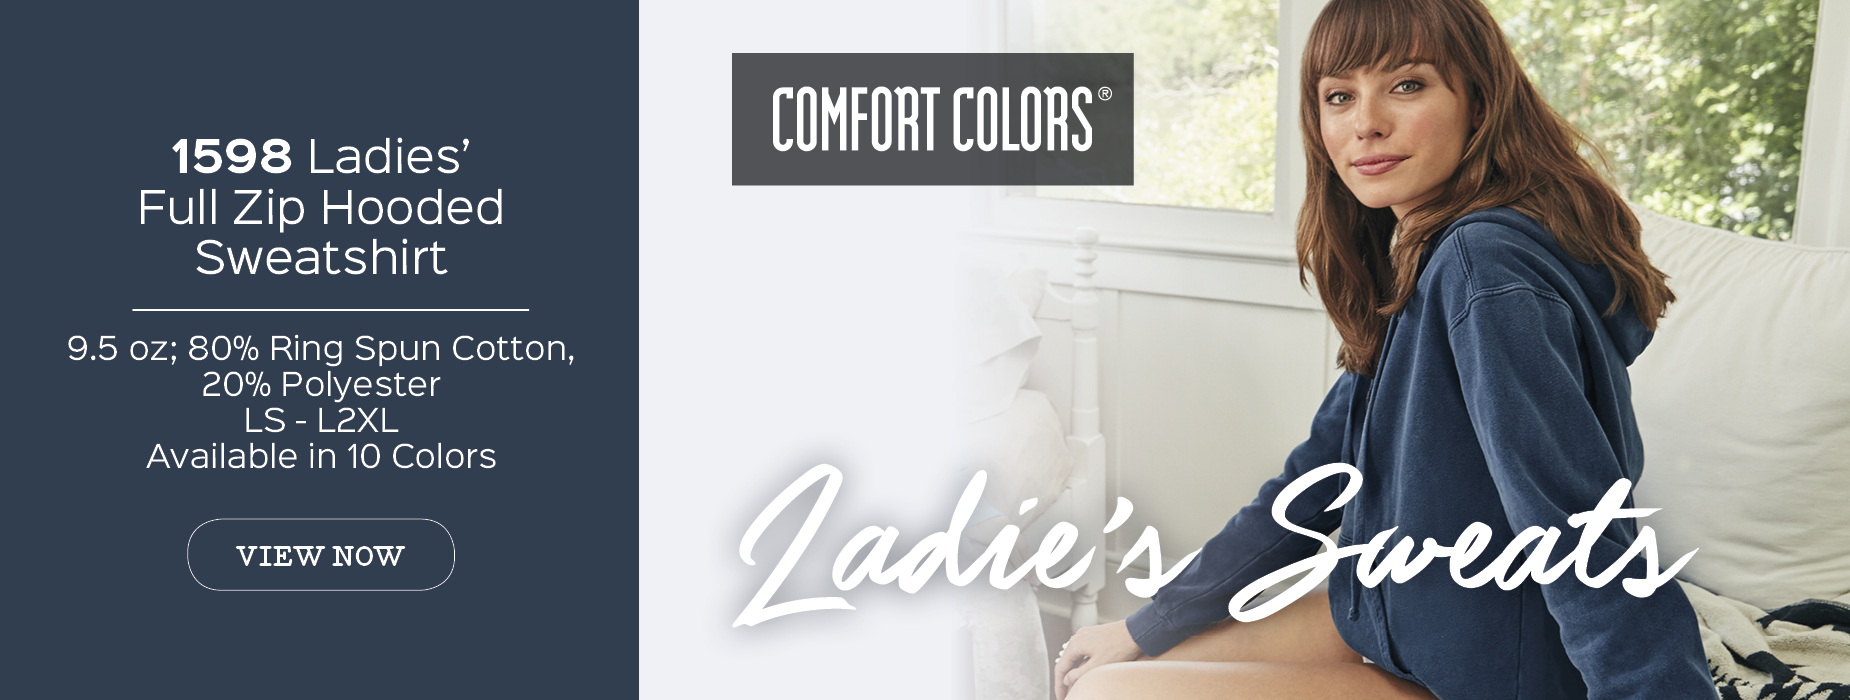 View now 1598 soft washed garment dyed Comfort Colors® ladies' full zip hooded sweat wholesale